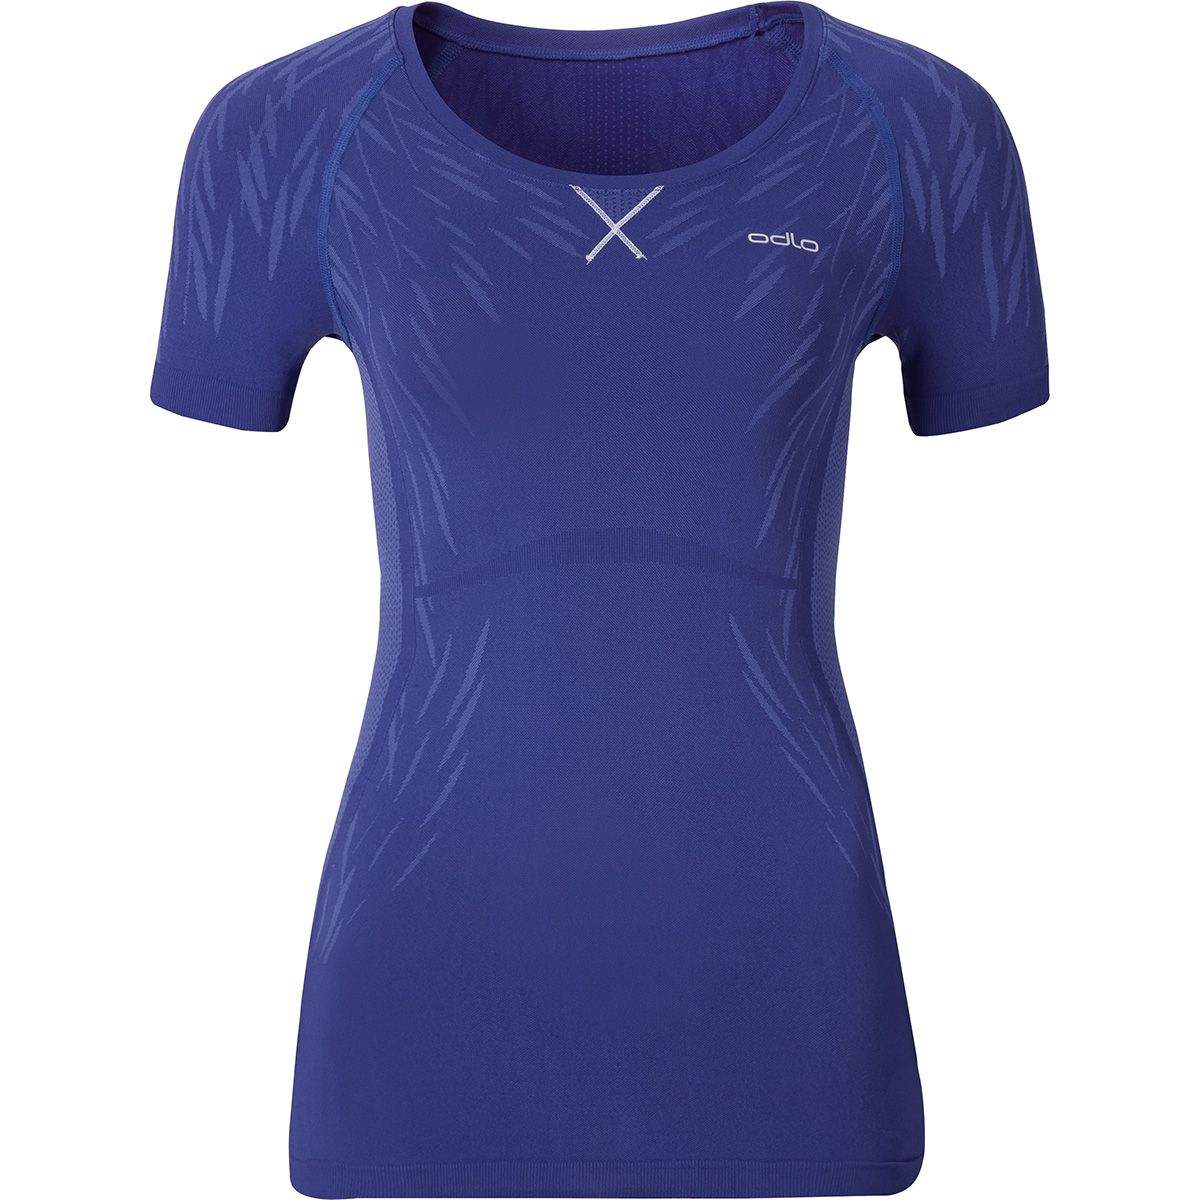 Odlo Damen Evolution Light Blackcomb T-Shirt (Größe XS, Blau) | Kurzarm Unterhemden > Damen